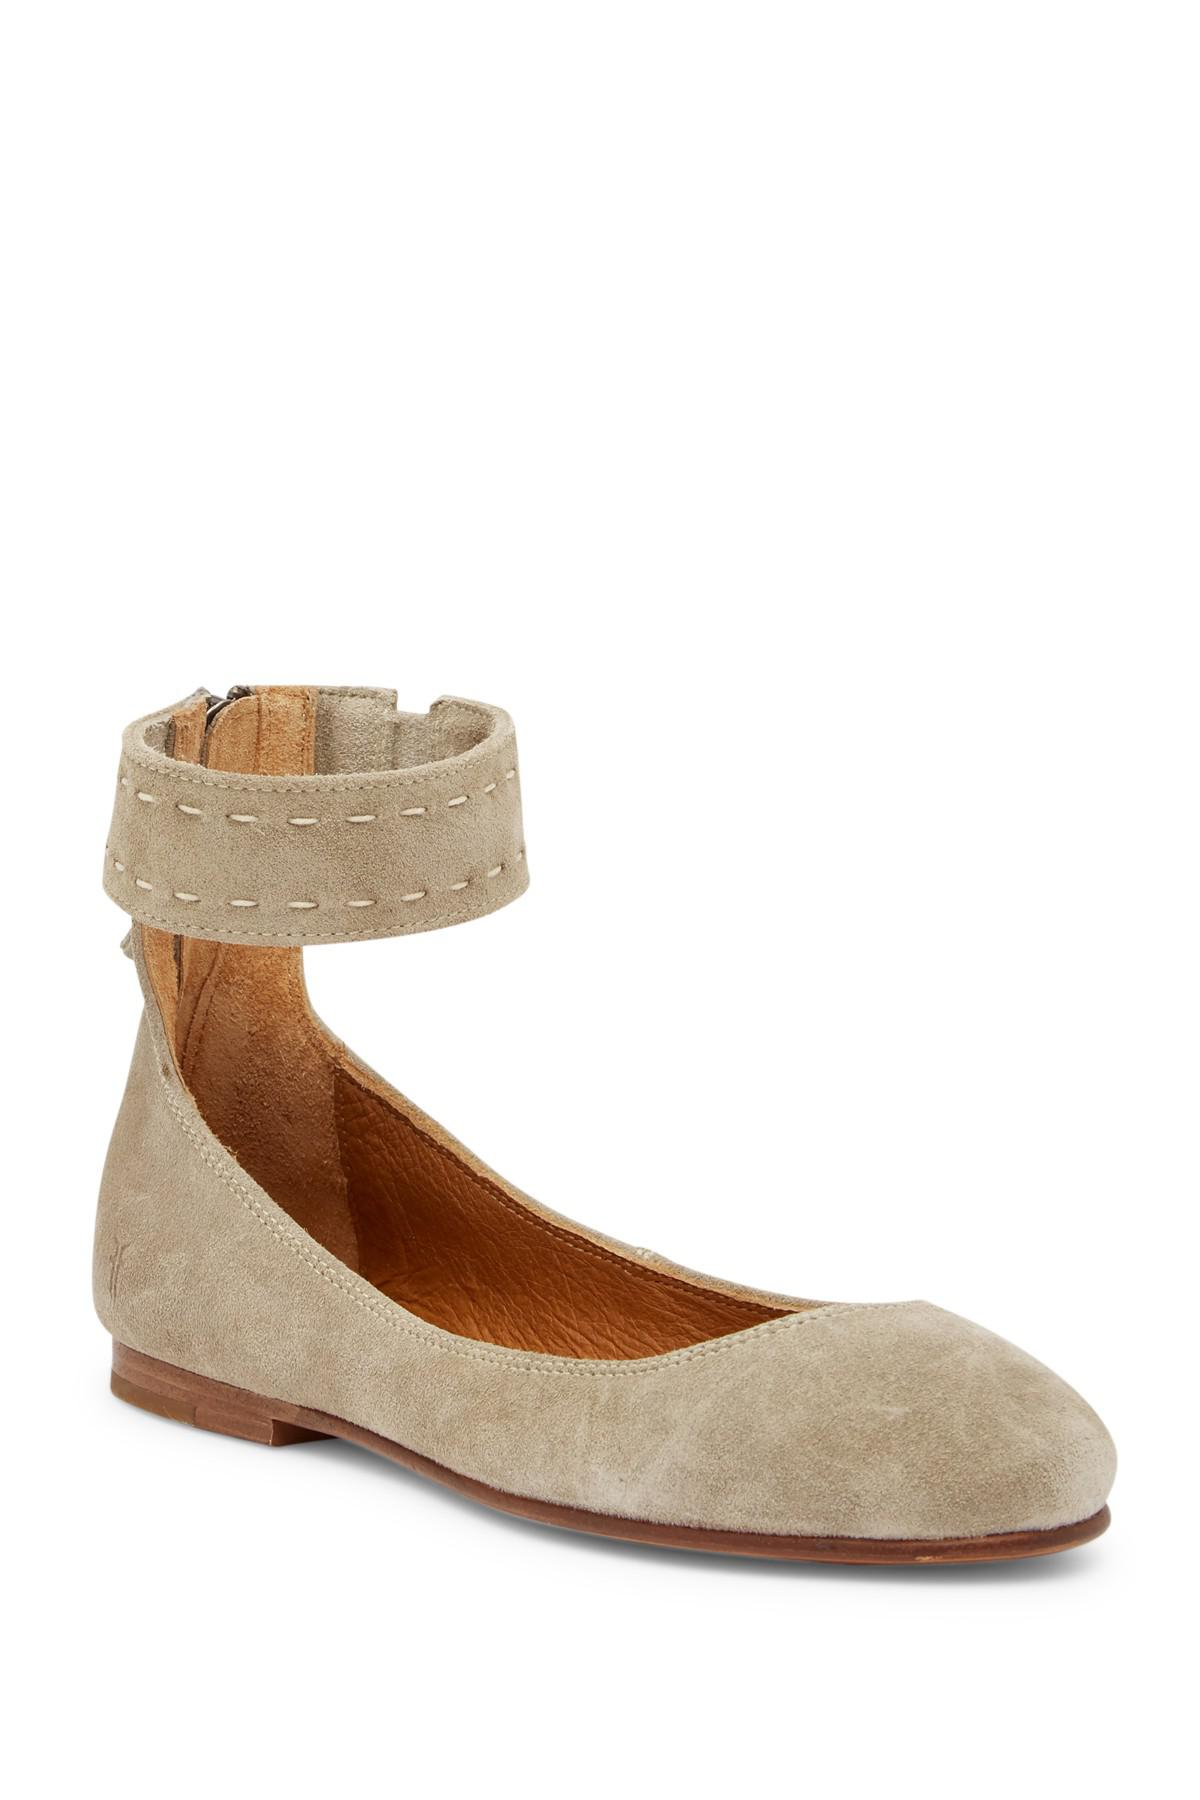 286648f8a2d Lyst - Frye Carson Ankle Strap Ballet Flat in Brown